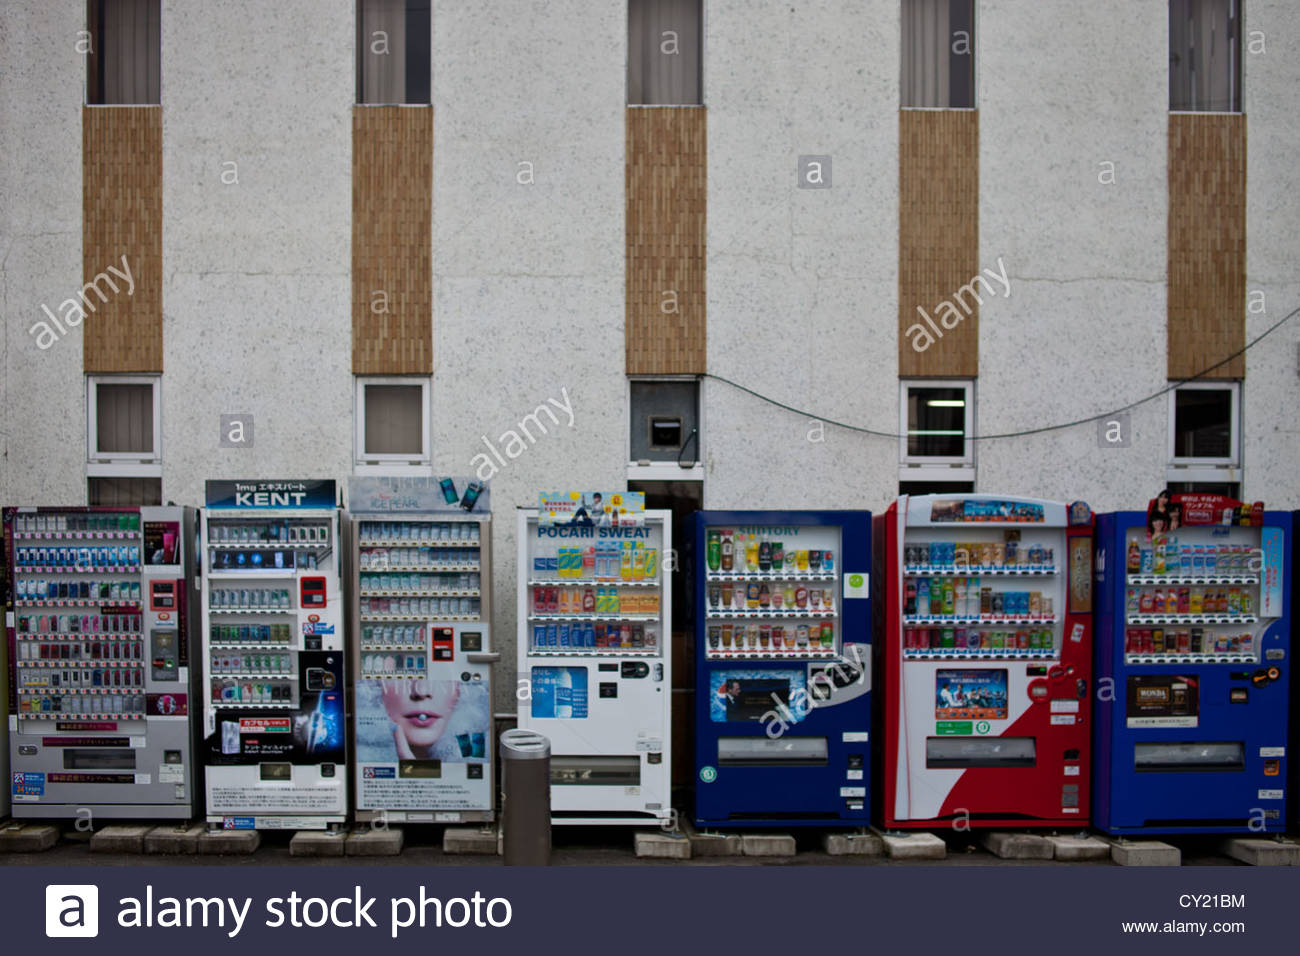 Vending machines line the side of a building in Fukushima city, 60km from the Fukushima Daiichi nuclear power plant. - Stock Image